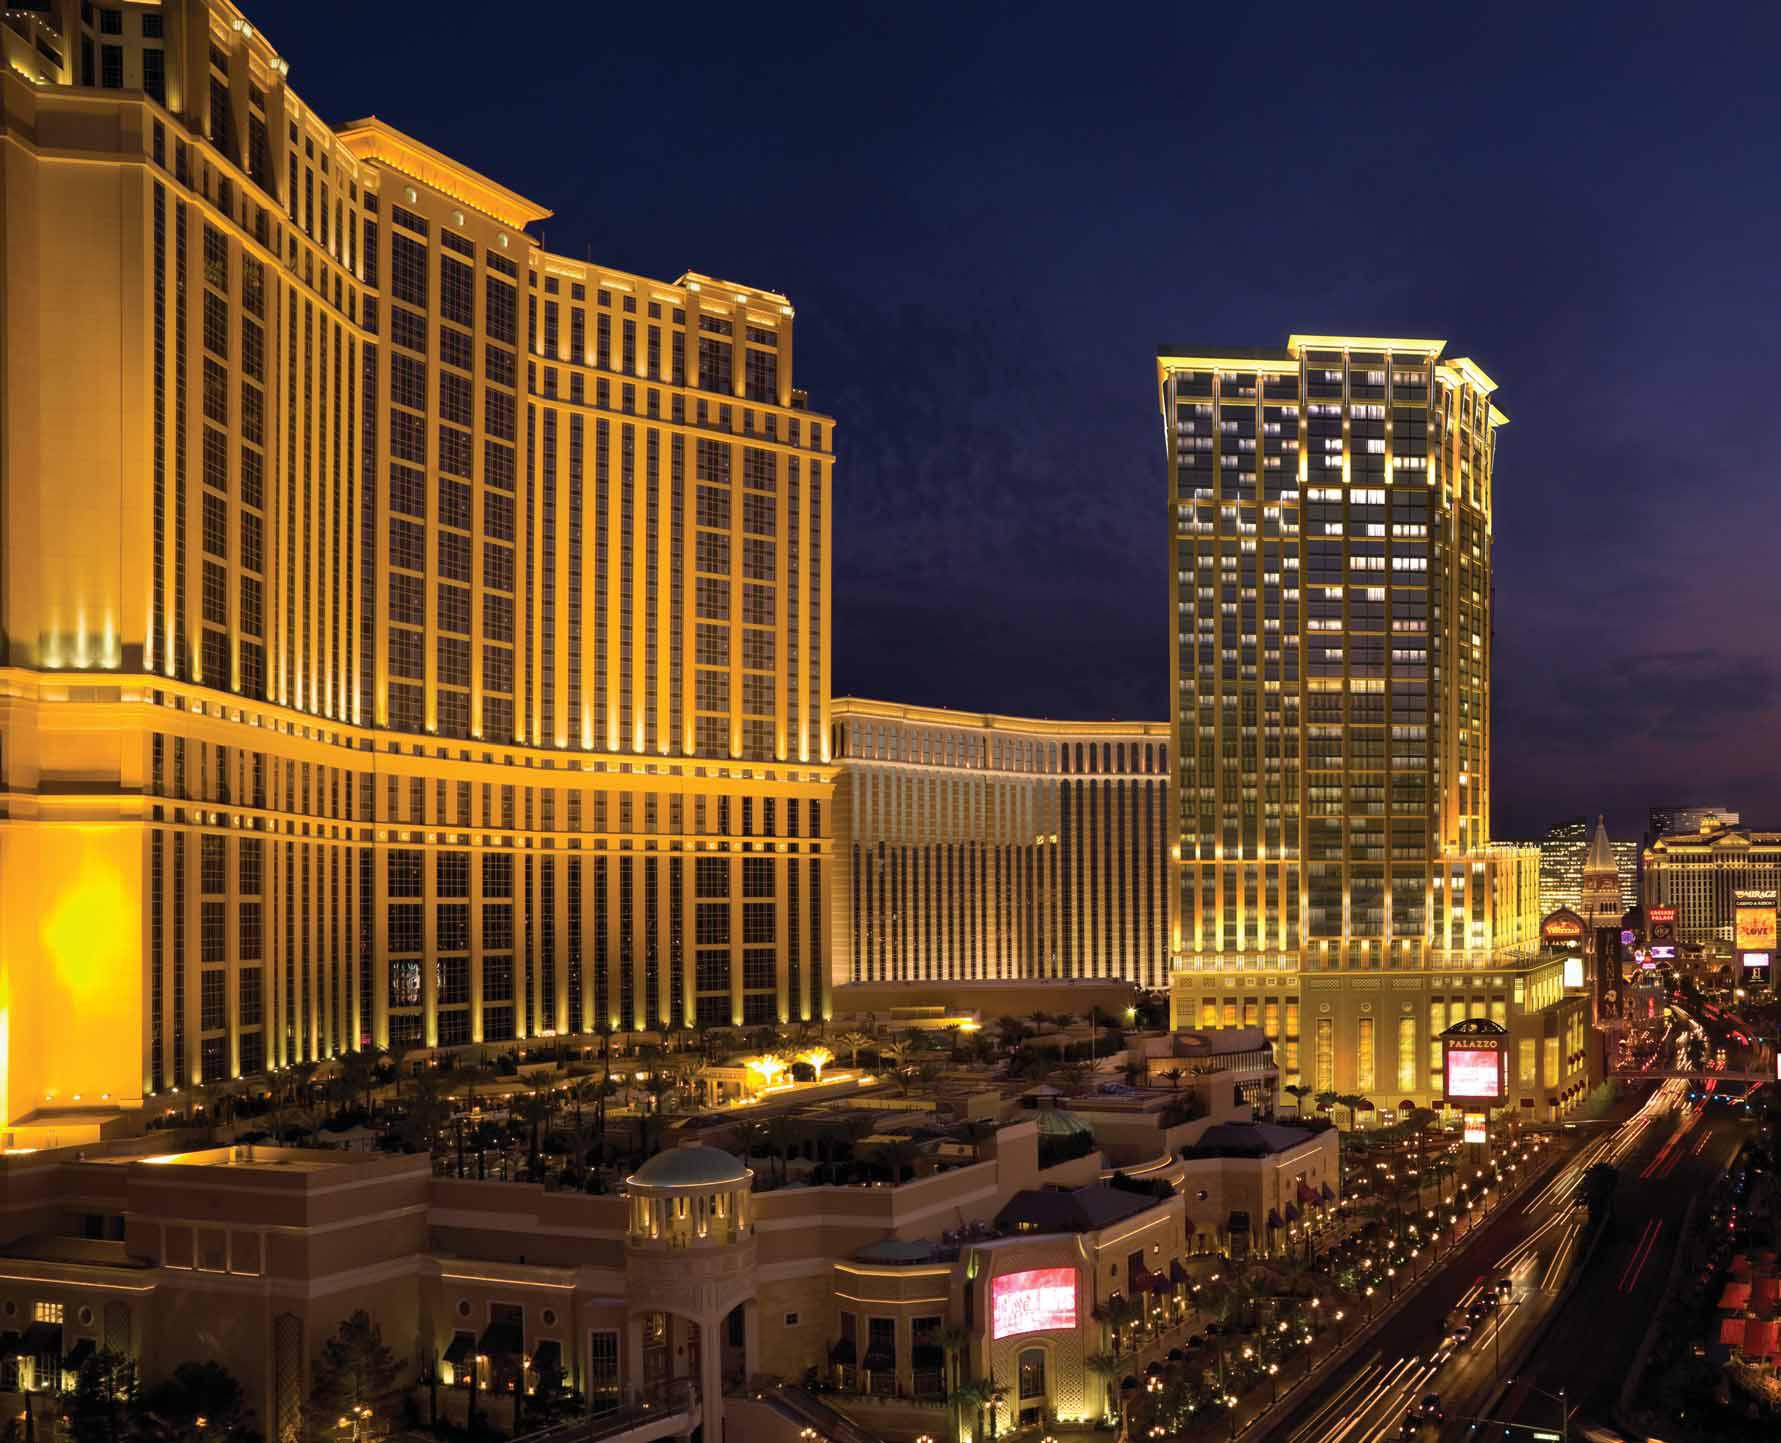 World Largest Hotels, Palazzo Megacenter, Las Vegas, Nevada, USA, Overview by night